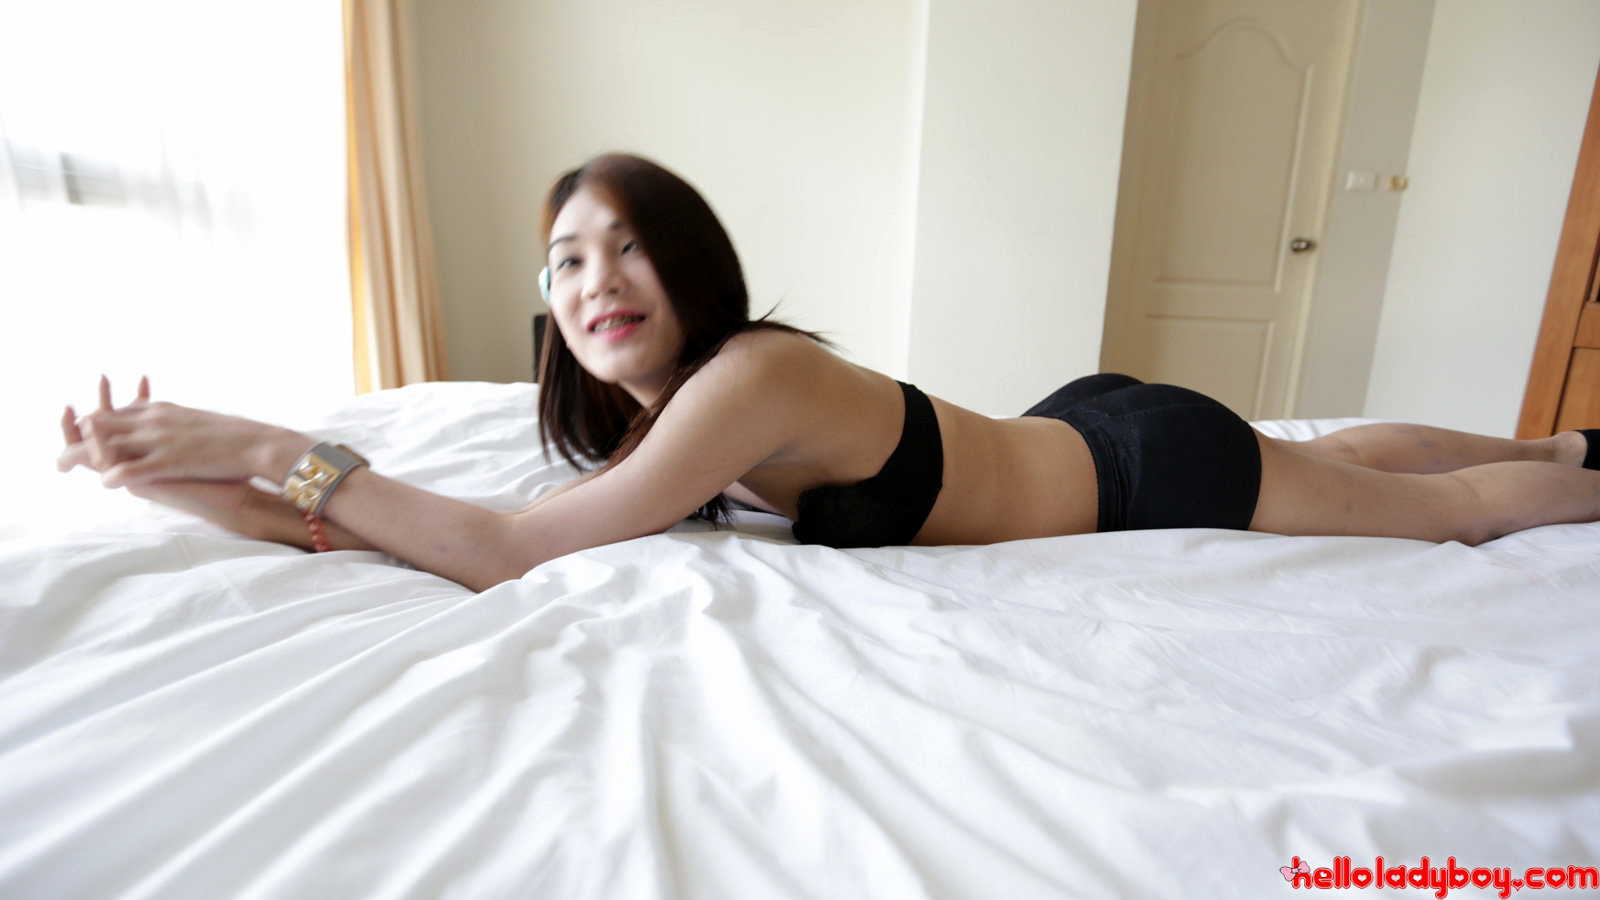 20 Year Old Asian Tranny Stripping For White Tourist